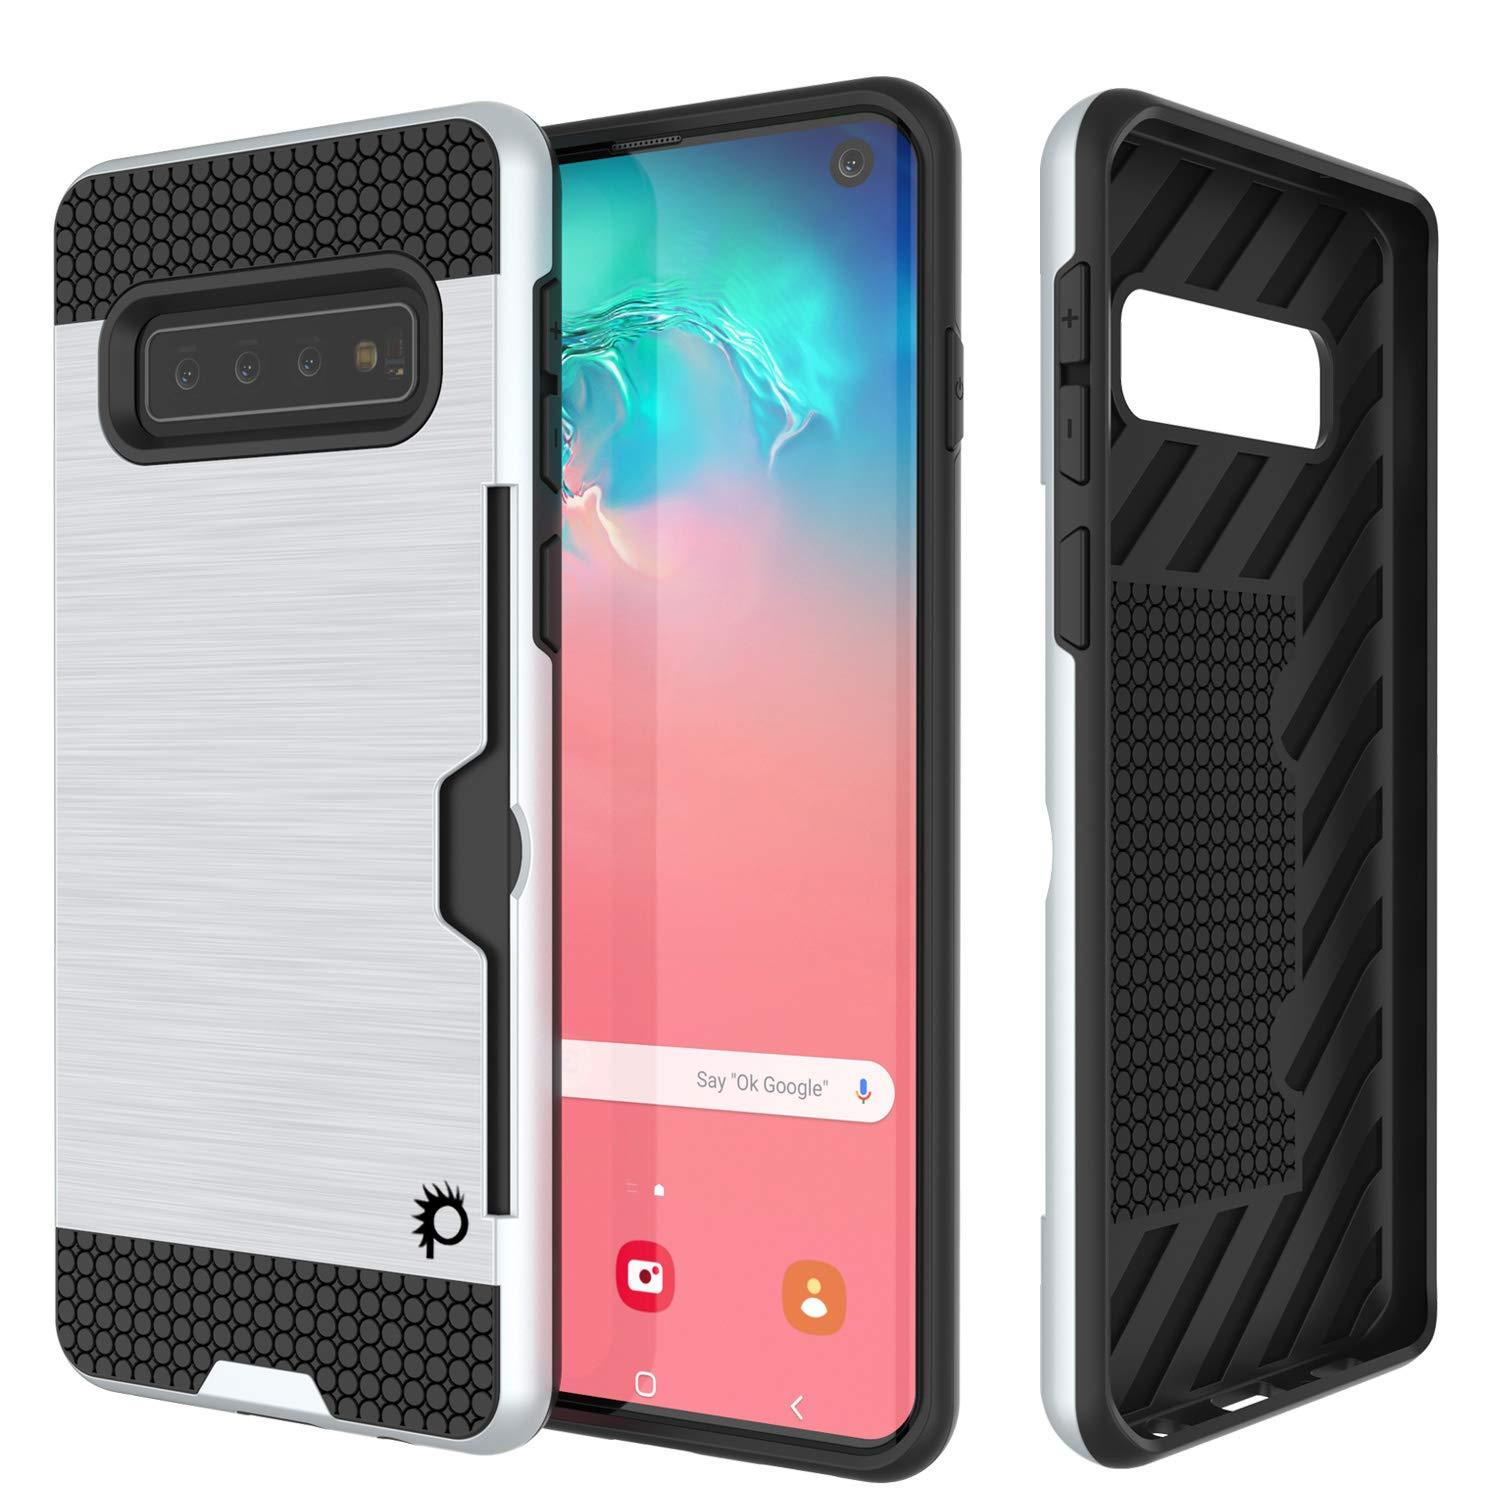 Galaxy S10e Case, PUNKcase [SLOT Series] [Slim Fit] Dual-Layer Armor Cover w/Integrated Anti-Shock System, Credit Card Slot [White]